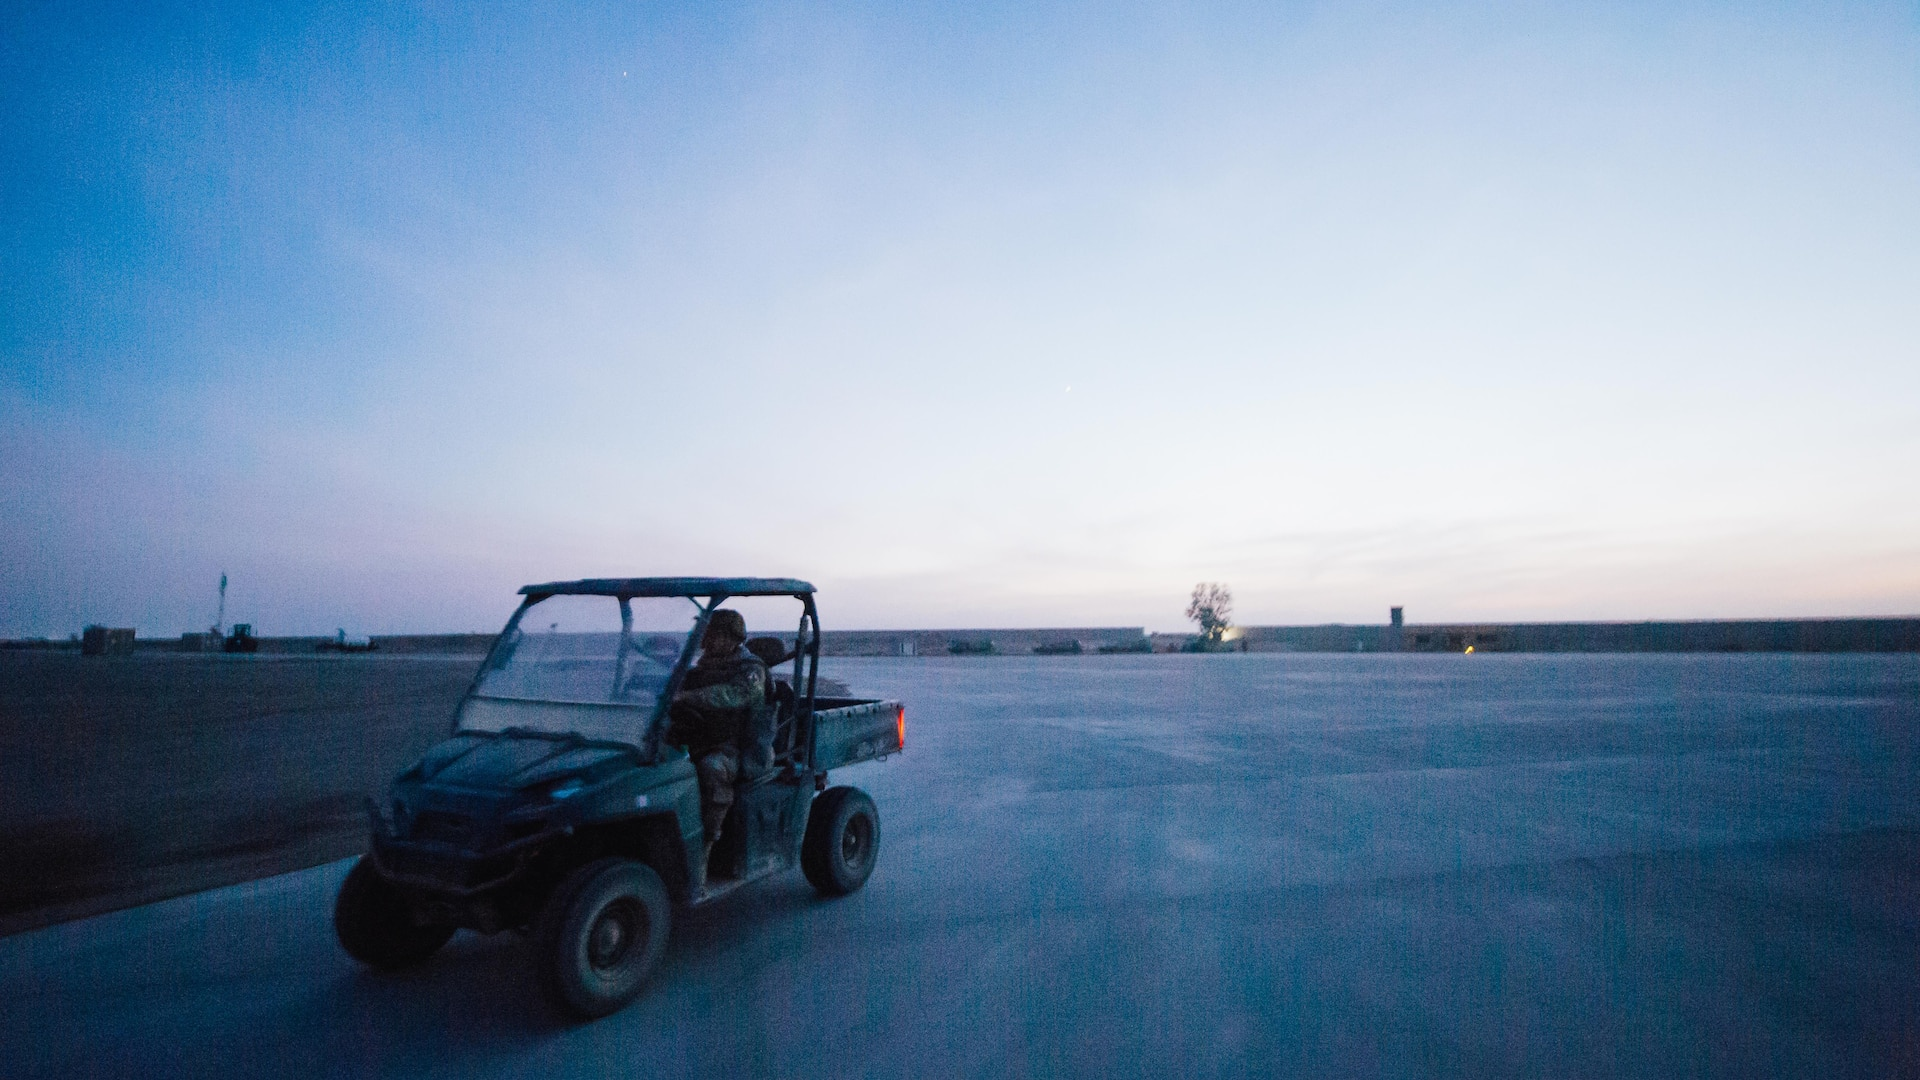 U.S. Air Force Staff Sgt. Steven Ramos, 821st Contingency Response Group airfield manager, drives a utility vehicle to a job site at Qayyarah West Airfield, Iraq, in support of Combined Joint Task Force - Operation Inherent Resolve, Nov. 14, 2016. The 821st CRG is highly-specialized in training and rapidly deploying personnel to quickly open airfields and establish, expand, sustain and coordinate air operations in austere, bare-base conditions. (U.S. Air Force photo by Senior Airman Jordan Castelan)